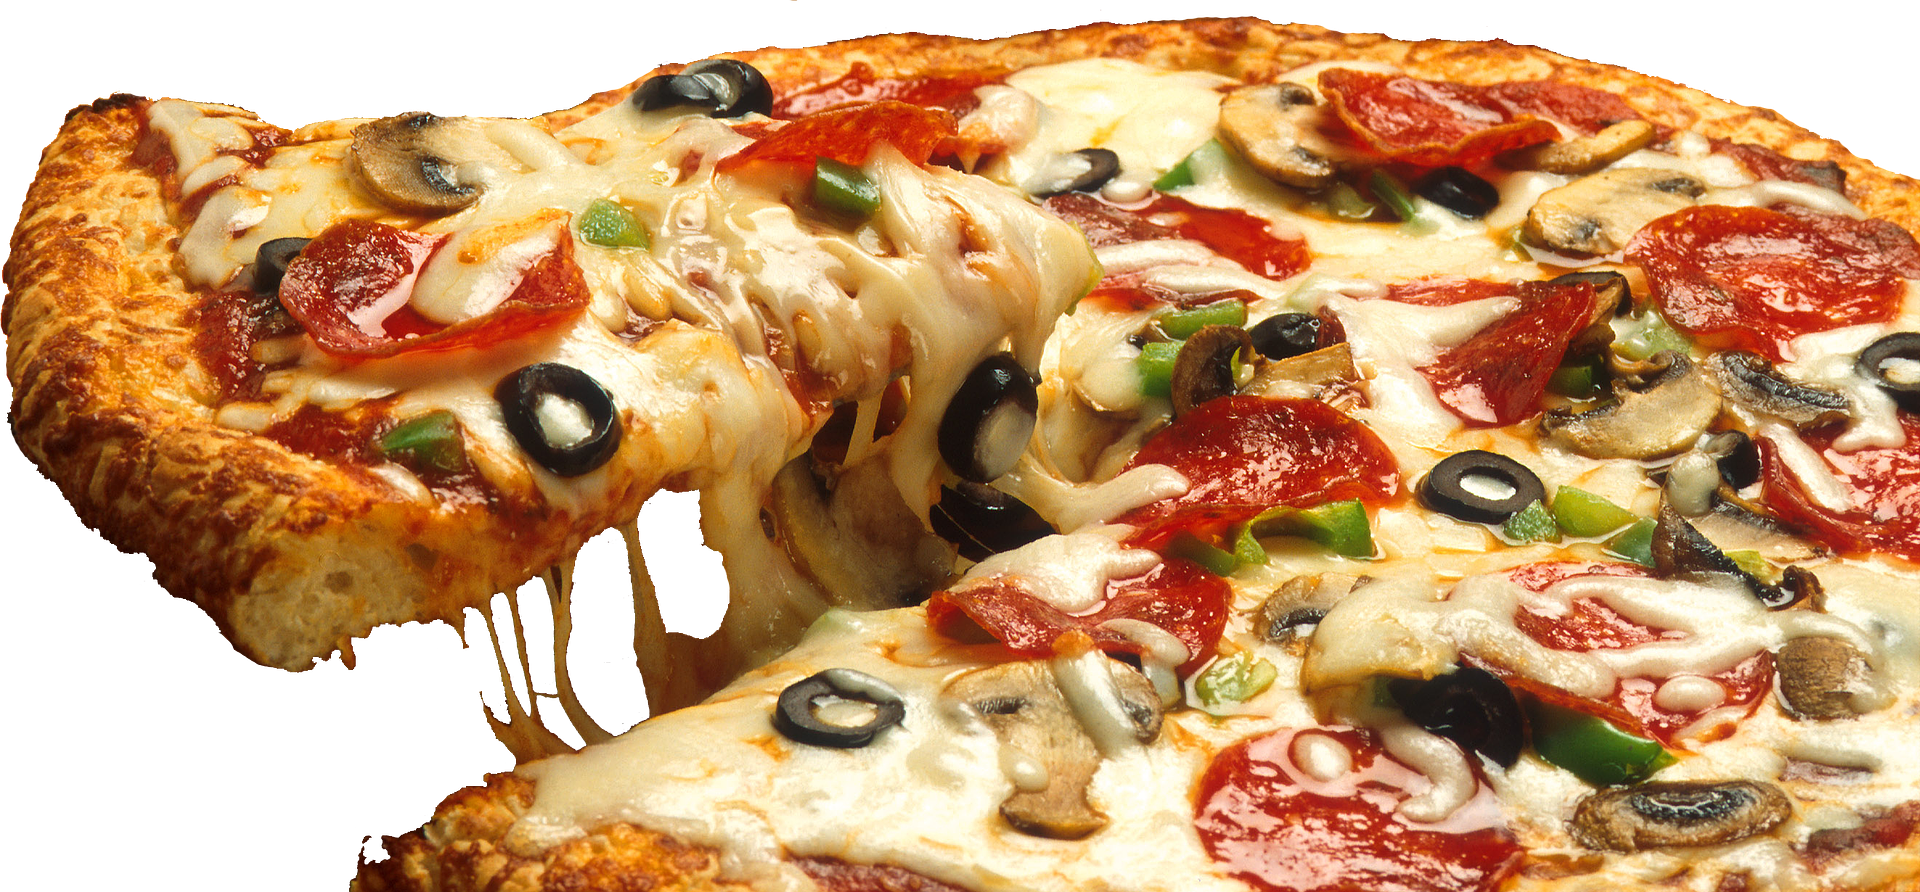 supreme-pizza-619133_1920.png